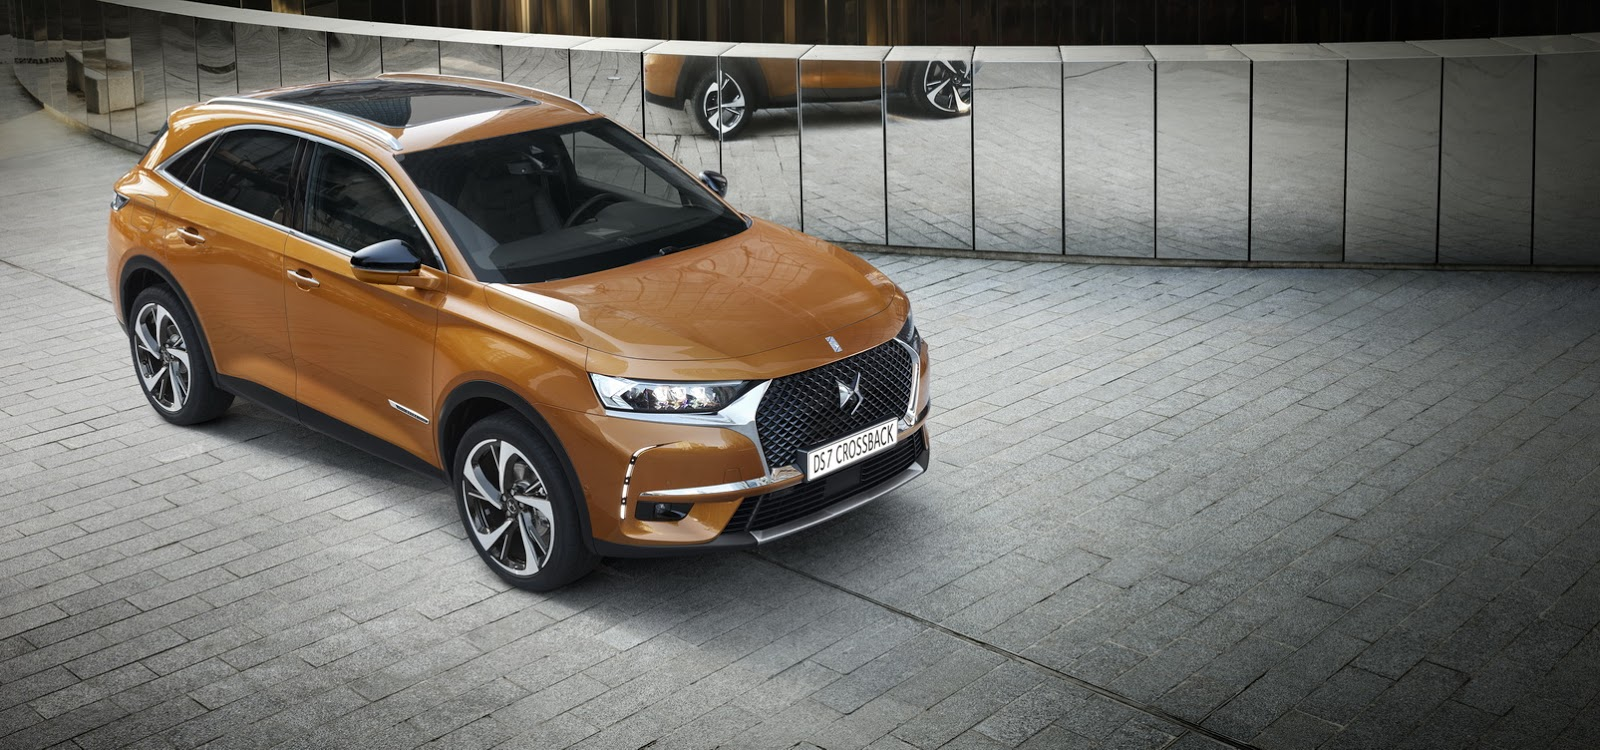 Peugeot 6008 2018 >> 2018 DS 7 Crossback Revealed: First Photos and Specs of Premium French SUV - autoevolution